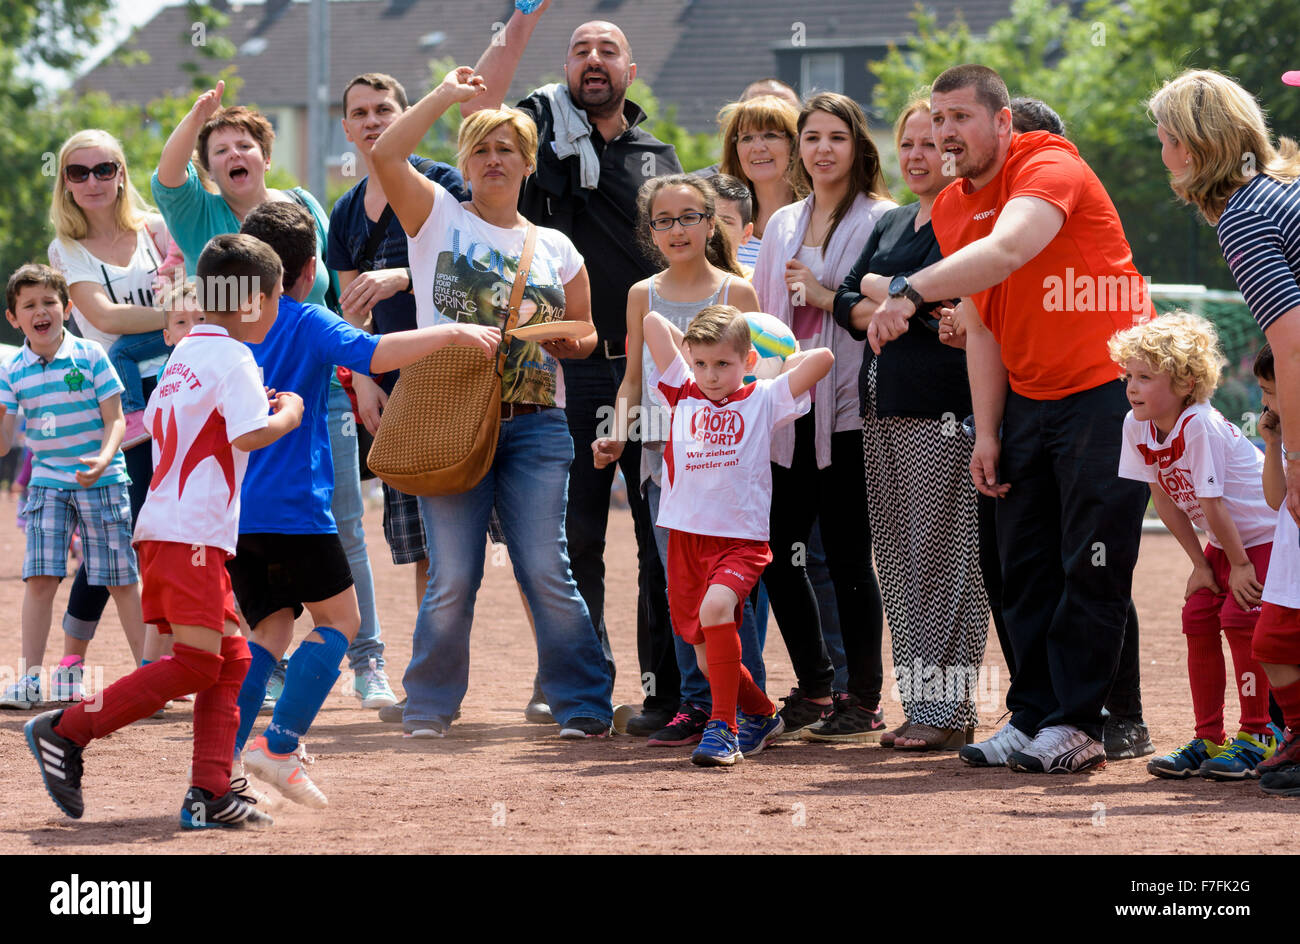 Parents of football / soccer playing children cheer for their children. - Stock Image